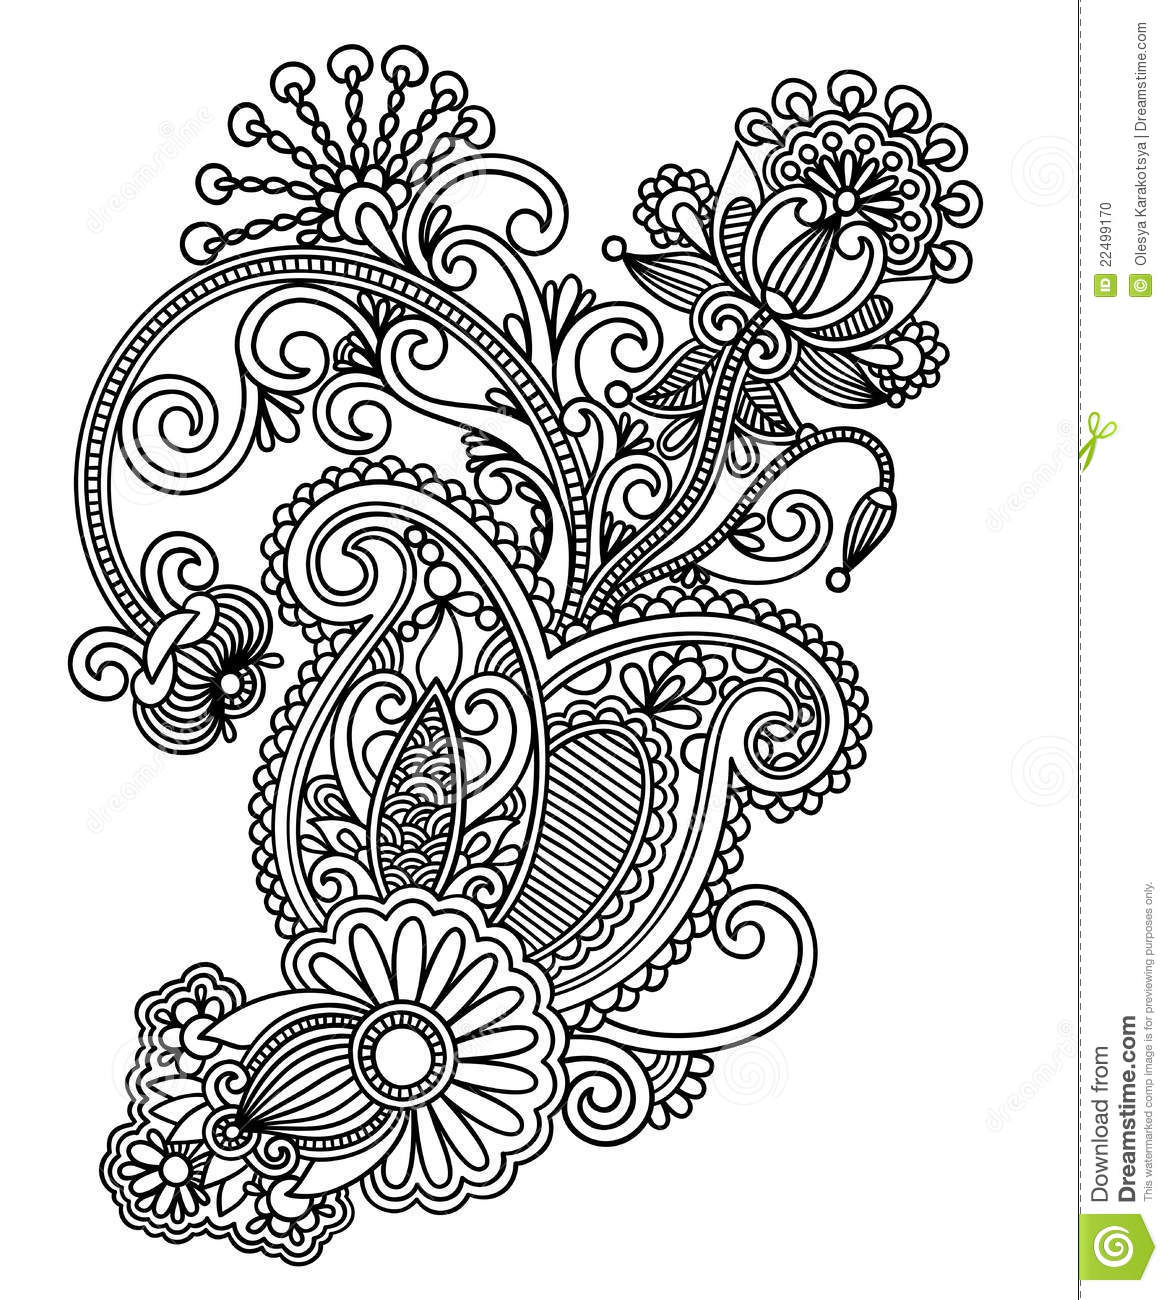 New Line Art Design : Line art ornate flower design stock vector illustration